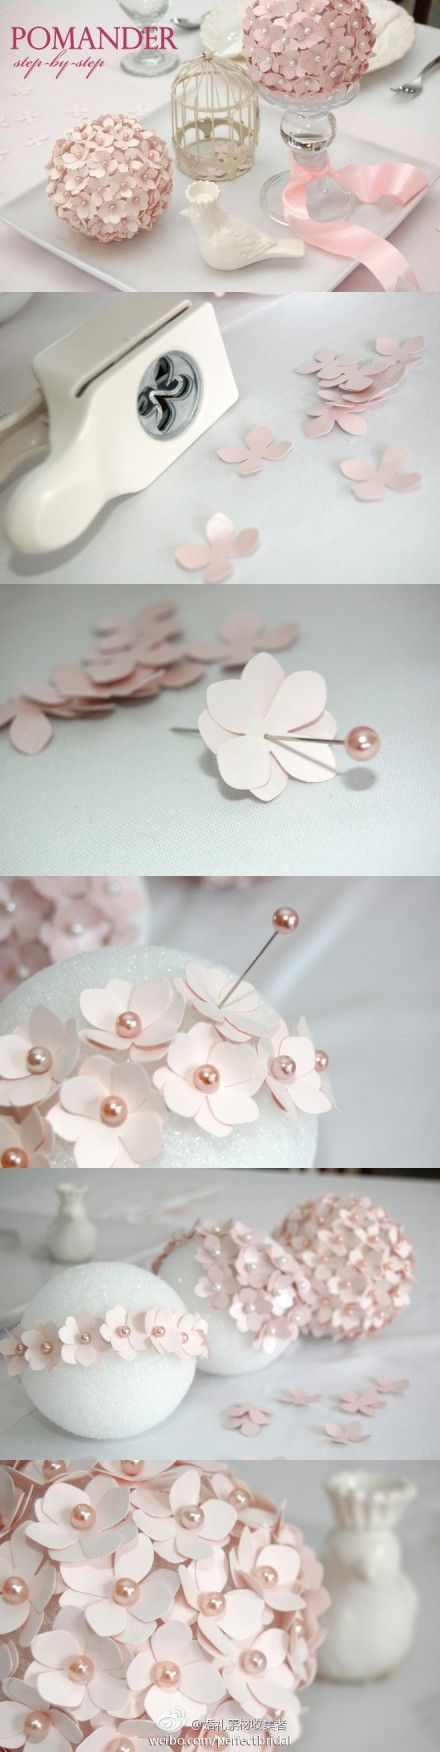 Nice: Ideas, Flowers Ball, Flower Ball, Decoration, Paper Punch, Paper Flowers, Centerpieces, Tables Decor, Center Pieces